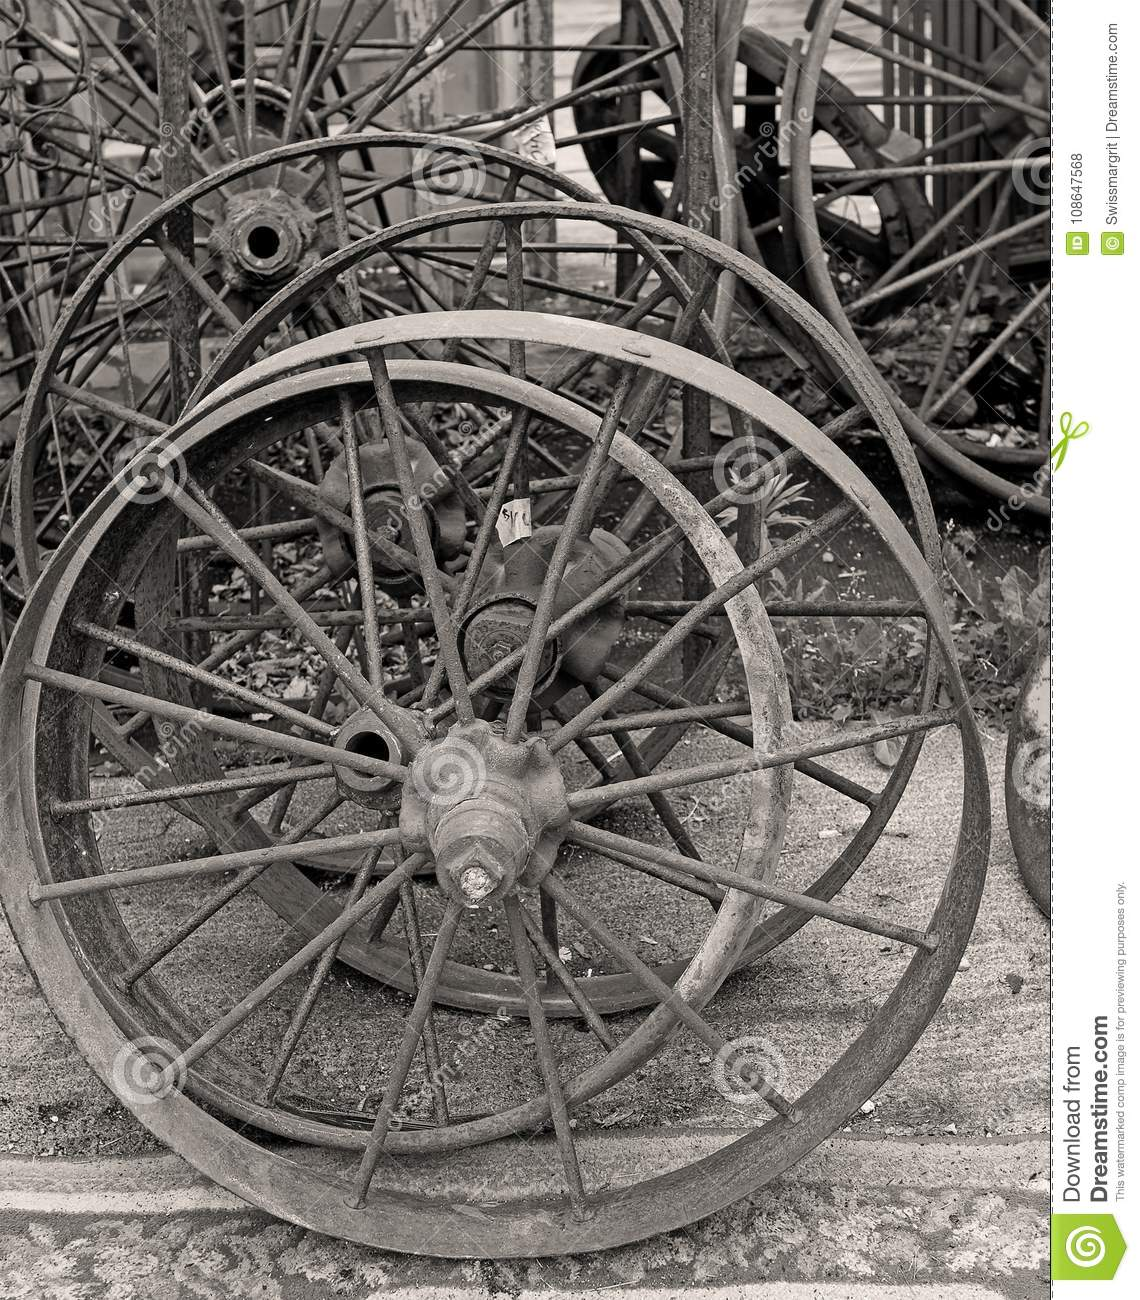 Old Metal Wagon Wheel For Sale At The Antique Market Stock